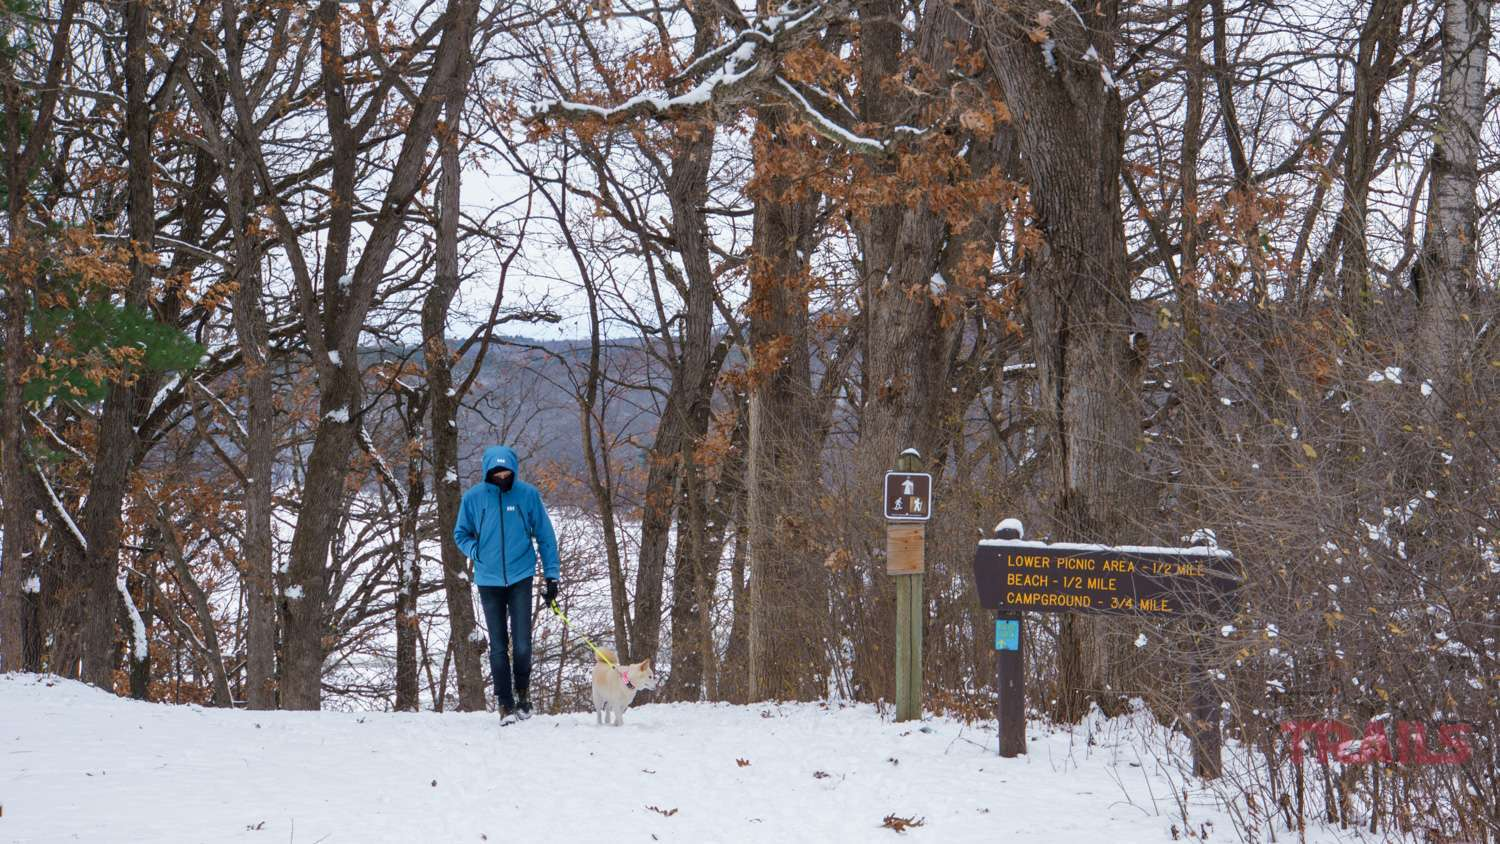 Walking the dog at Afton State Park in the winter